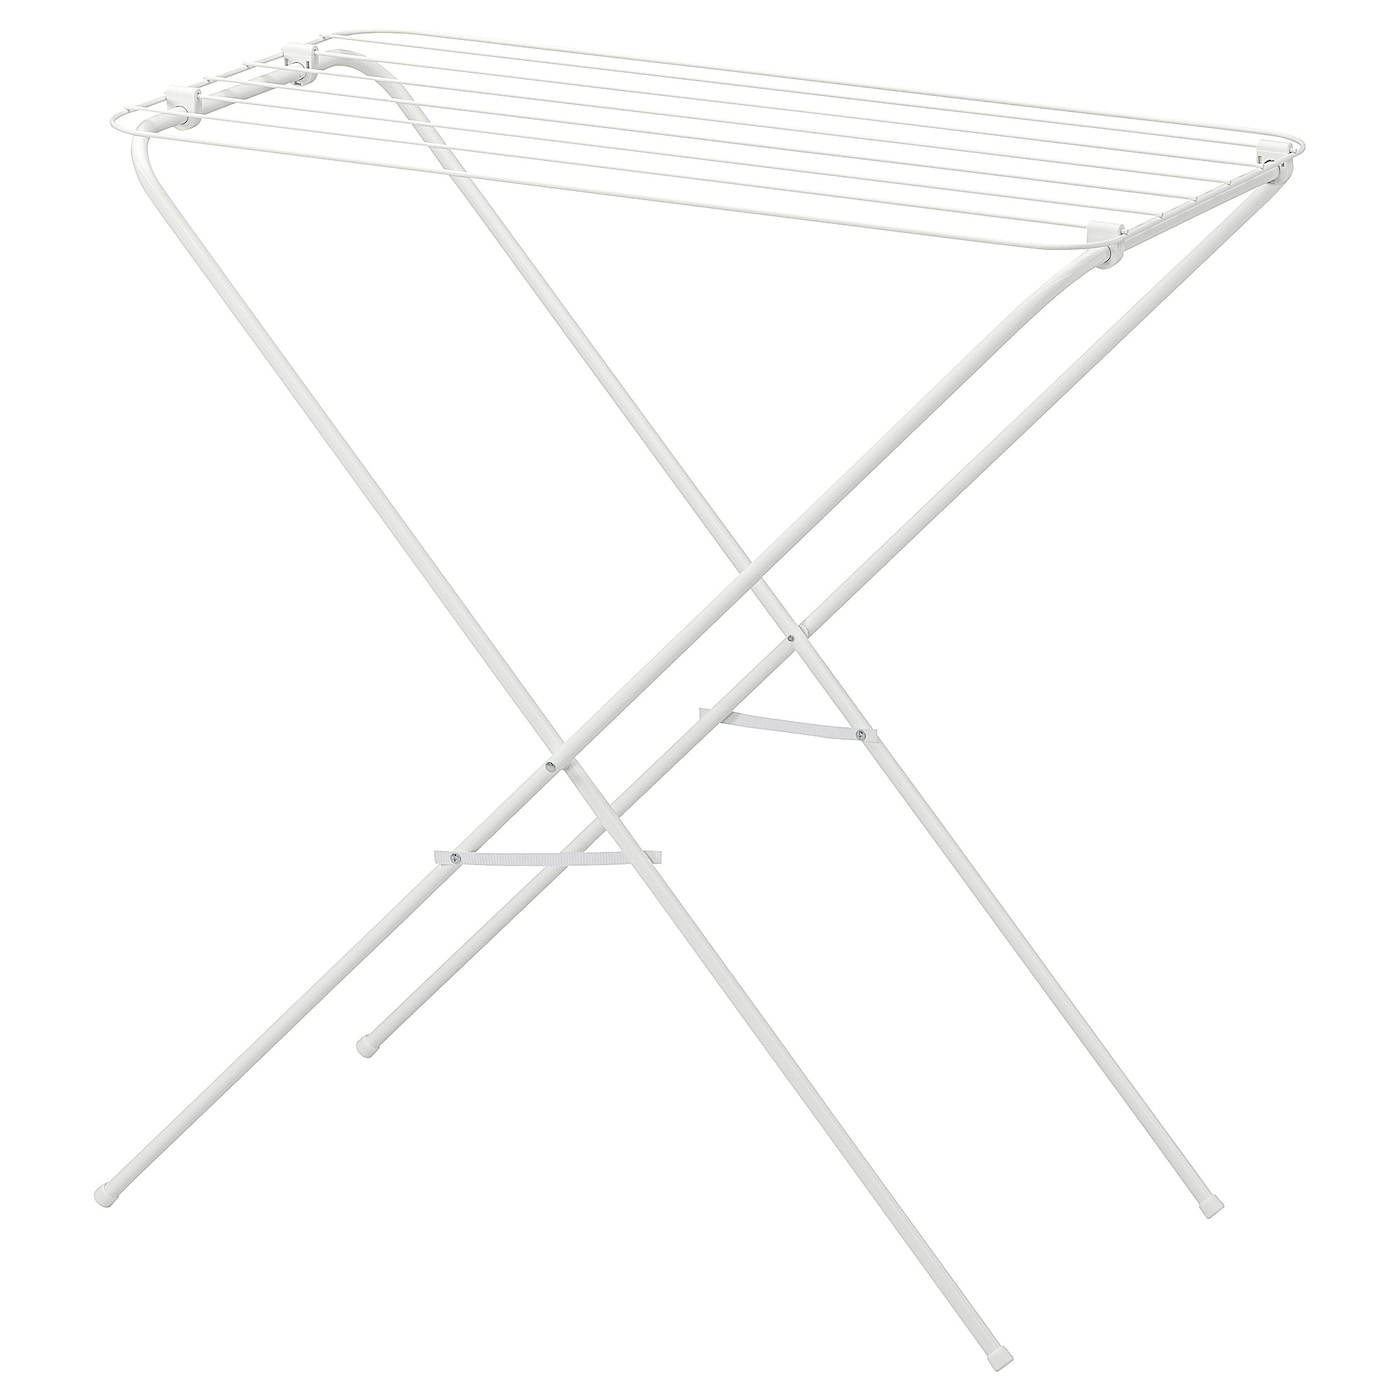 Ikea JÄll Drying Rack In Outdoor Simple To Fold Up And Put Away